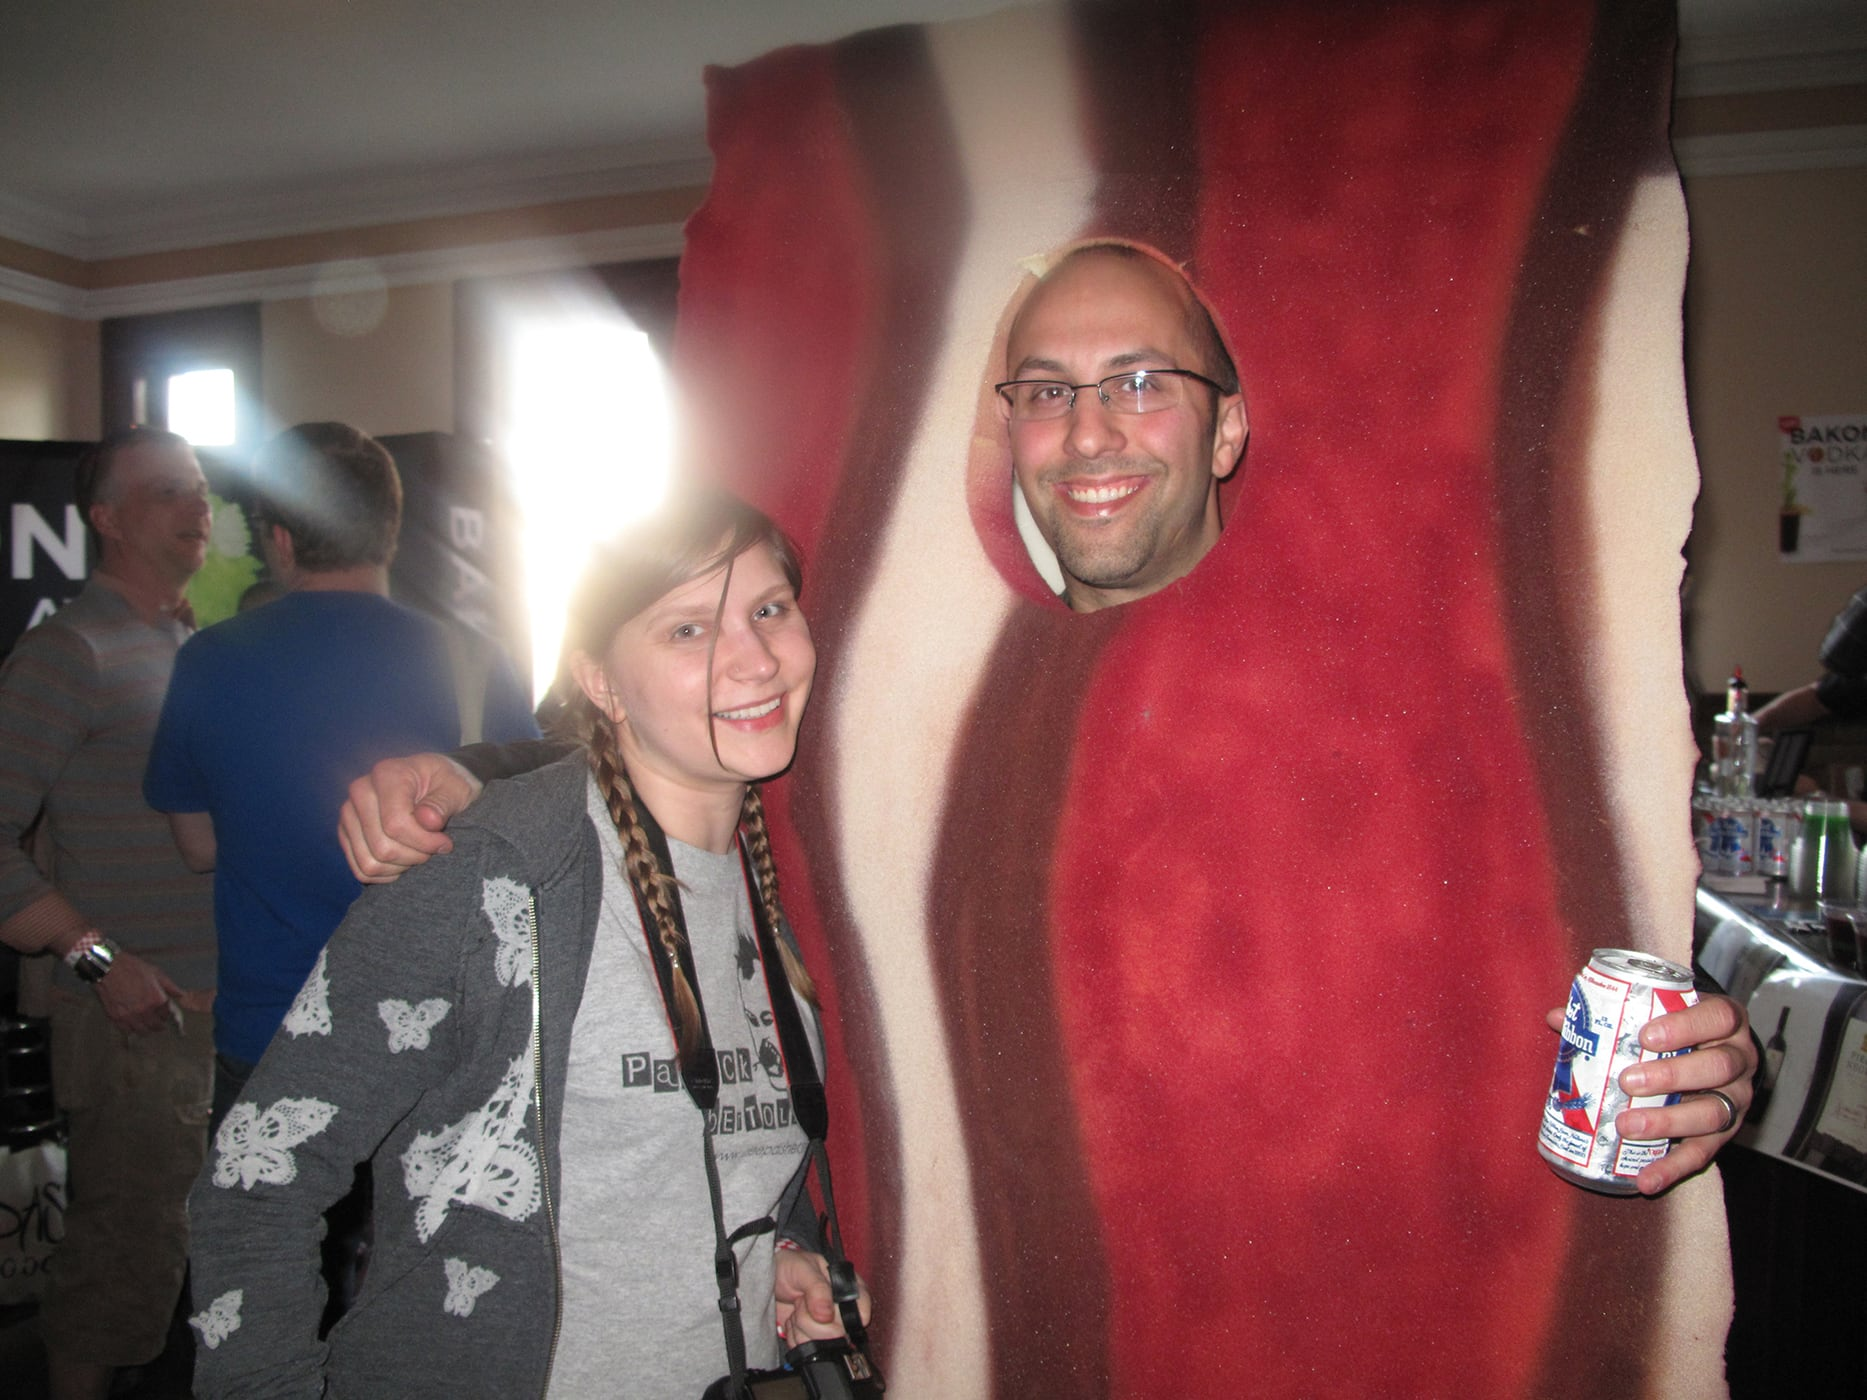 Me and bacon at Baconfest Chicago